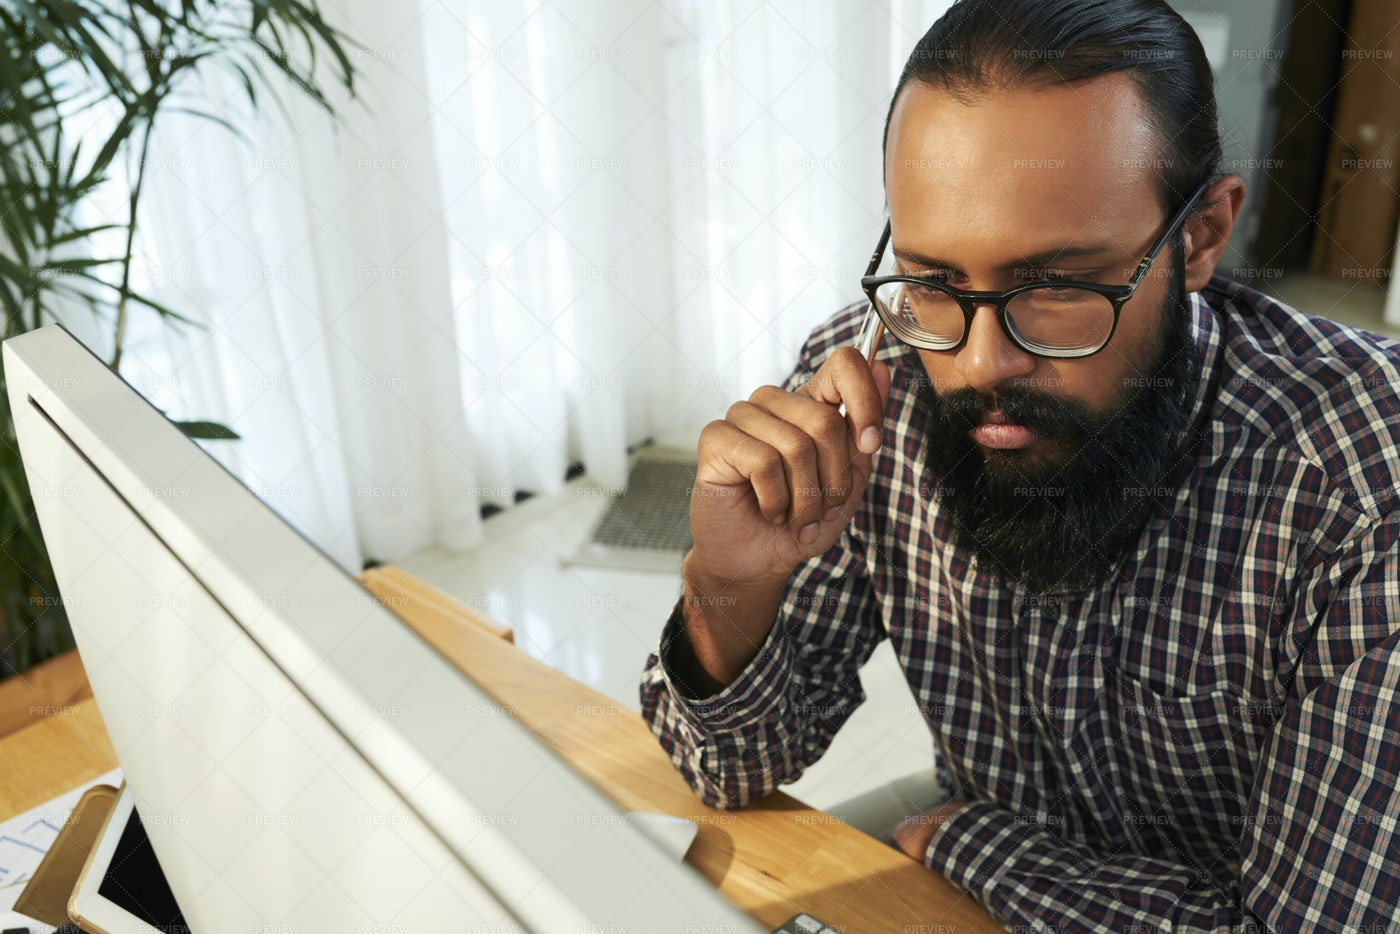 Pensive Businessman Working With: Stock Photos